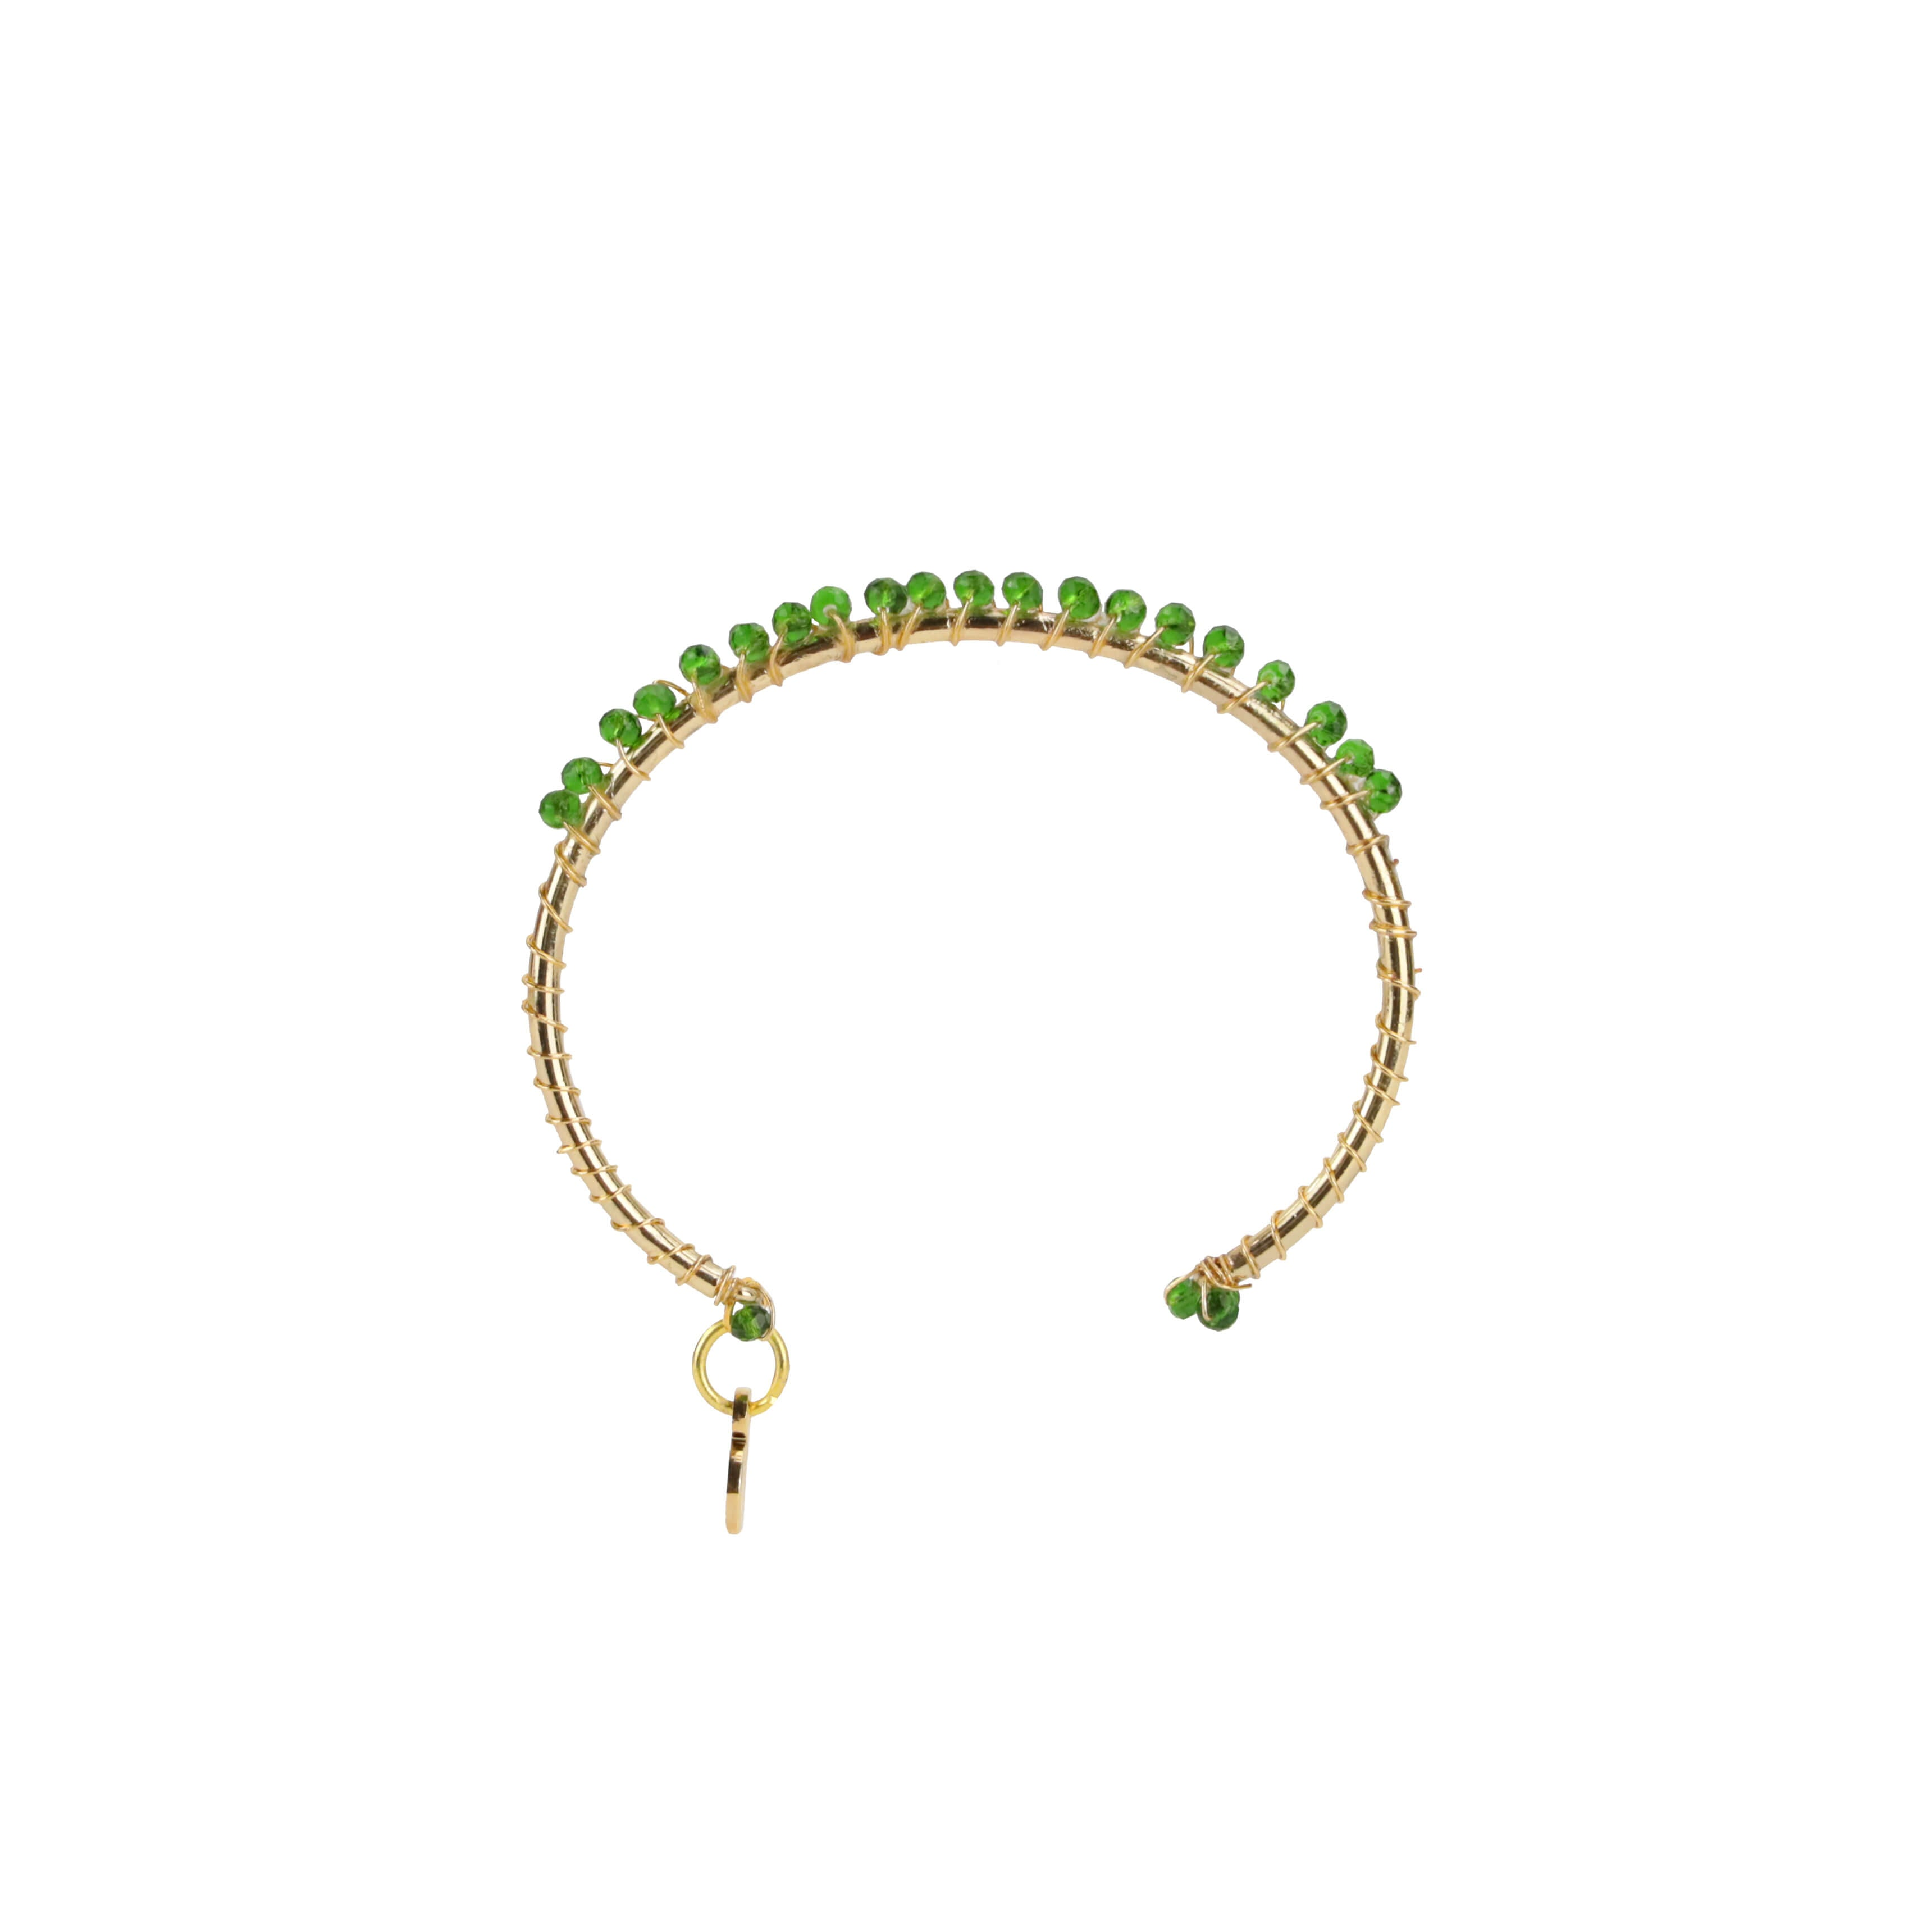 Anahata Gold Cuff Bracelet For Women - Green Quartz | BuDhaGirl